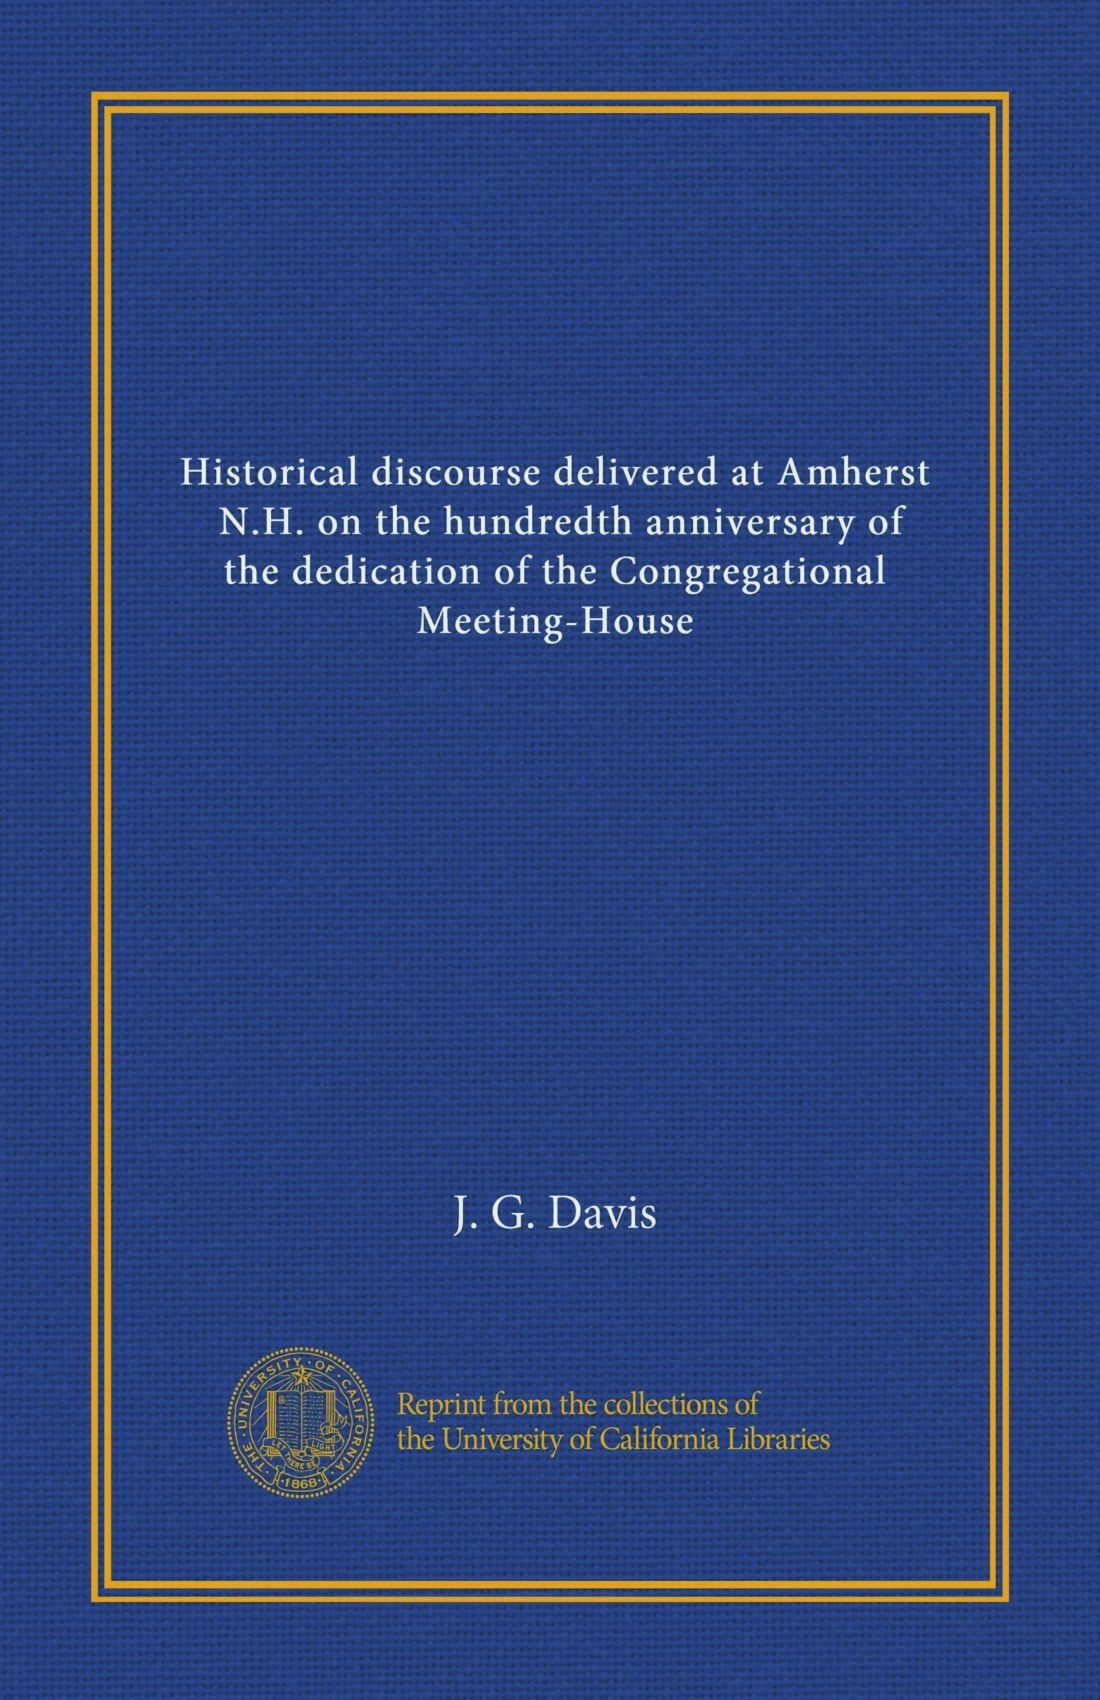 Download Historical discourse delivered at Amherst, N.H. on the hundredth anniversary of the dedication of the Congregational Meeting-House ebook